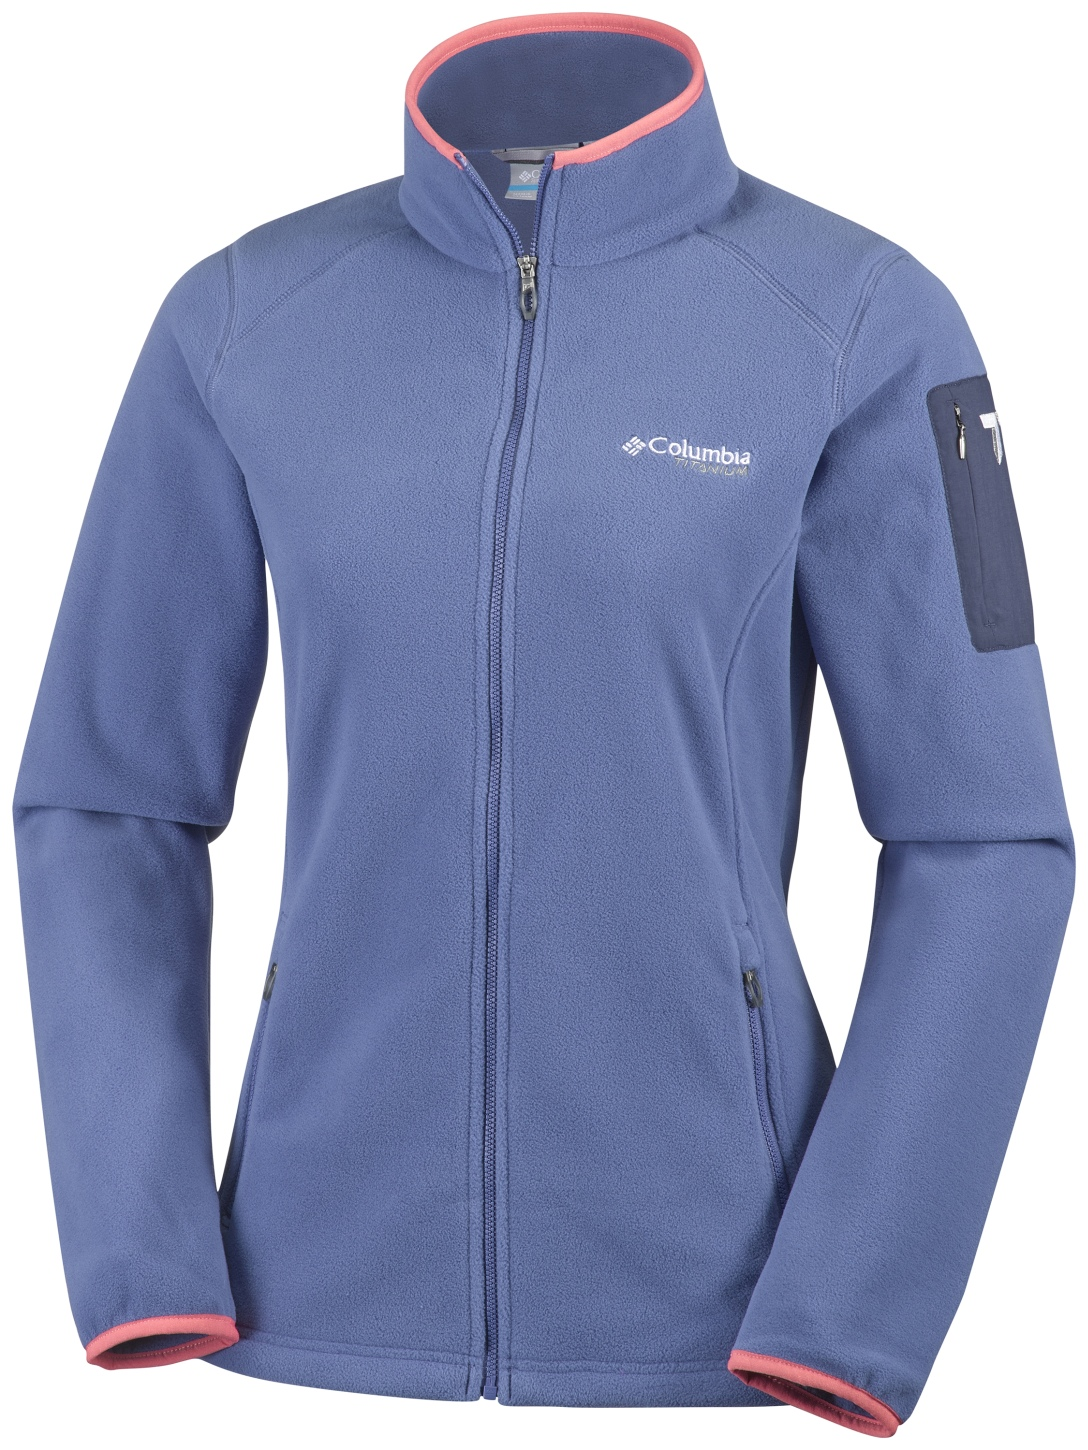 Columbia Women's Titan Pass 2.0 Fleece Jacket Bluebell, Hot Coral-30